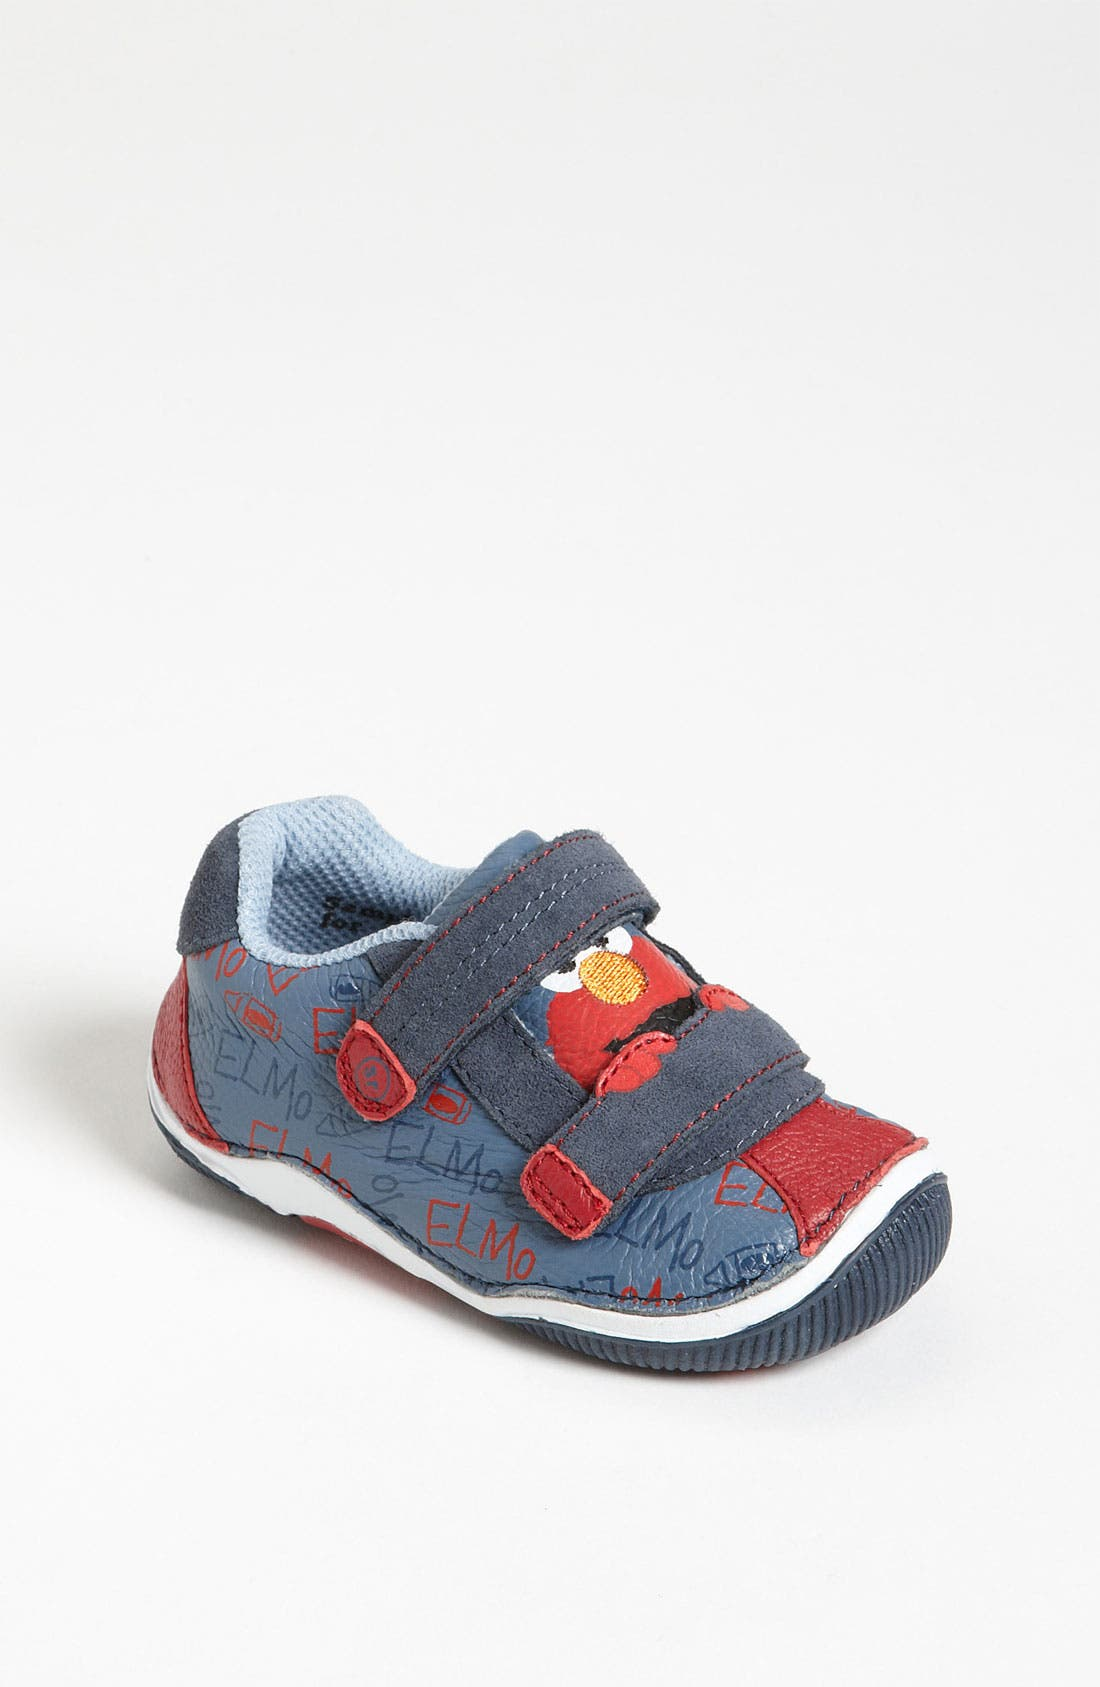 Alternate Image 1 Selected - Stride Rite 'Elmo' Sneaker (Baby, Walker & Toddler)